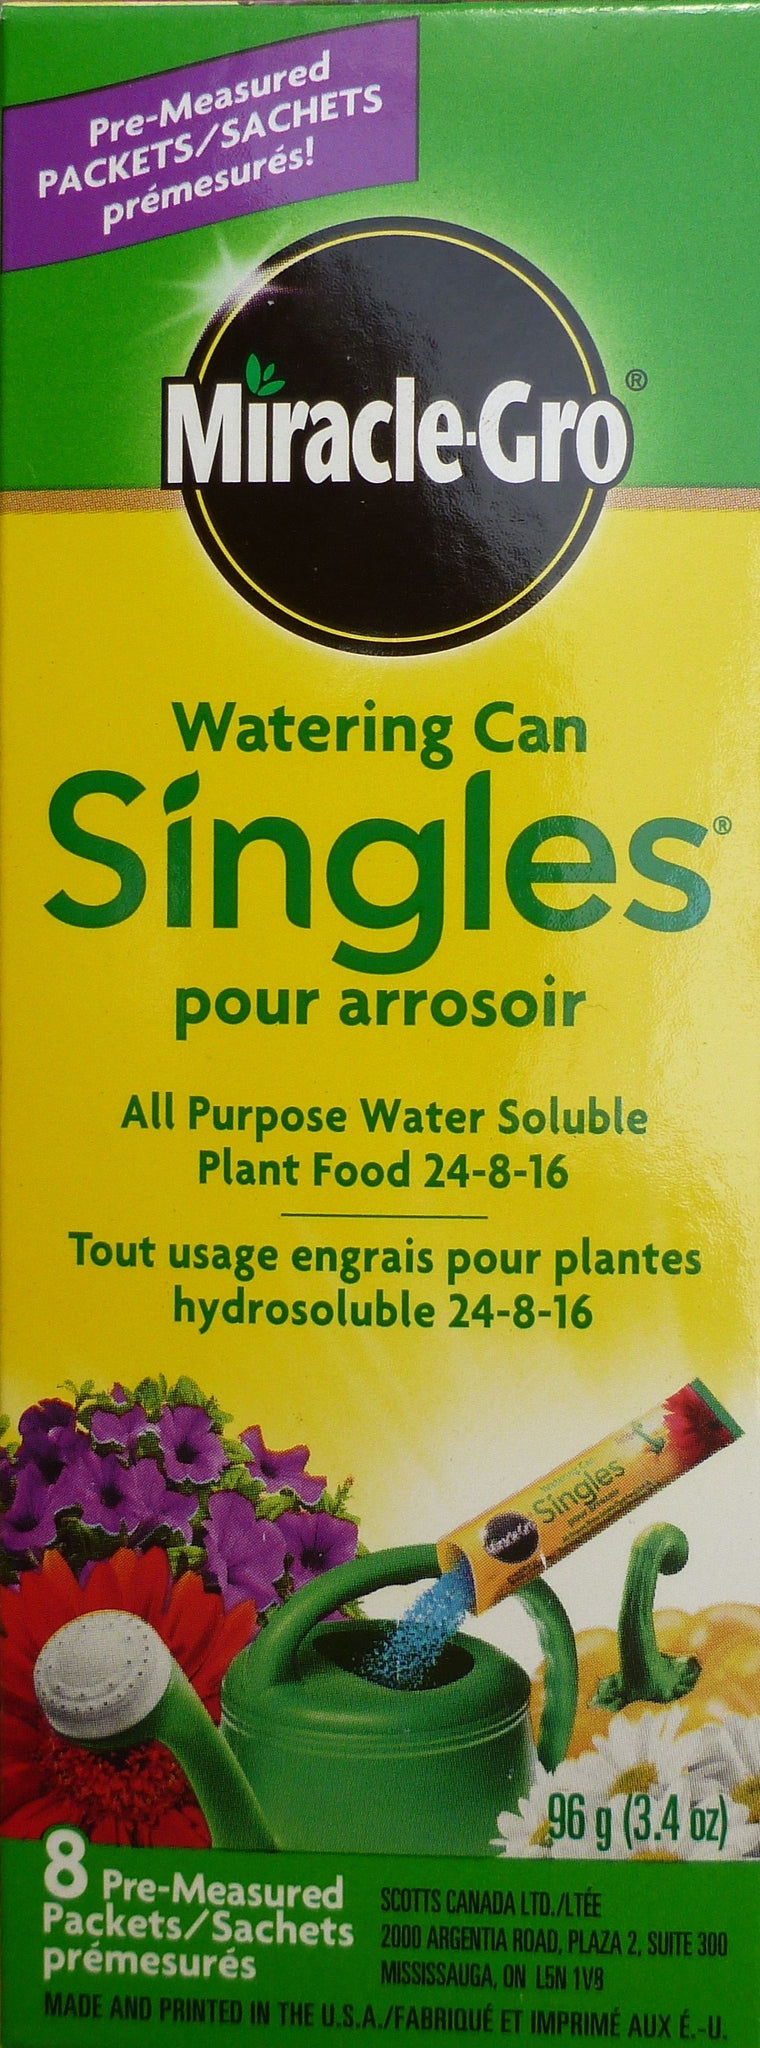 MiracleGro - Watering Can Singles 96g